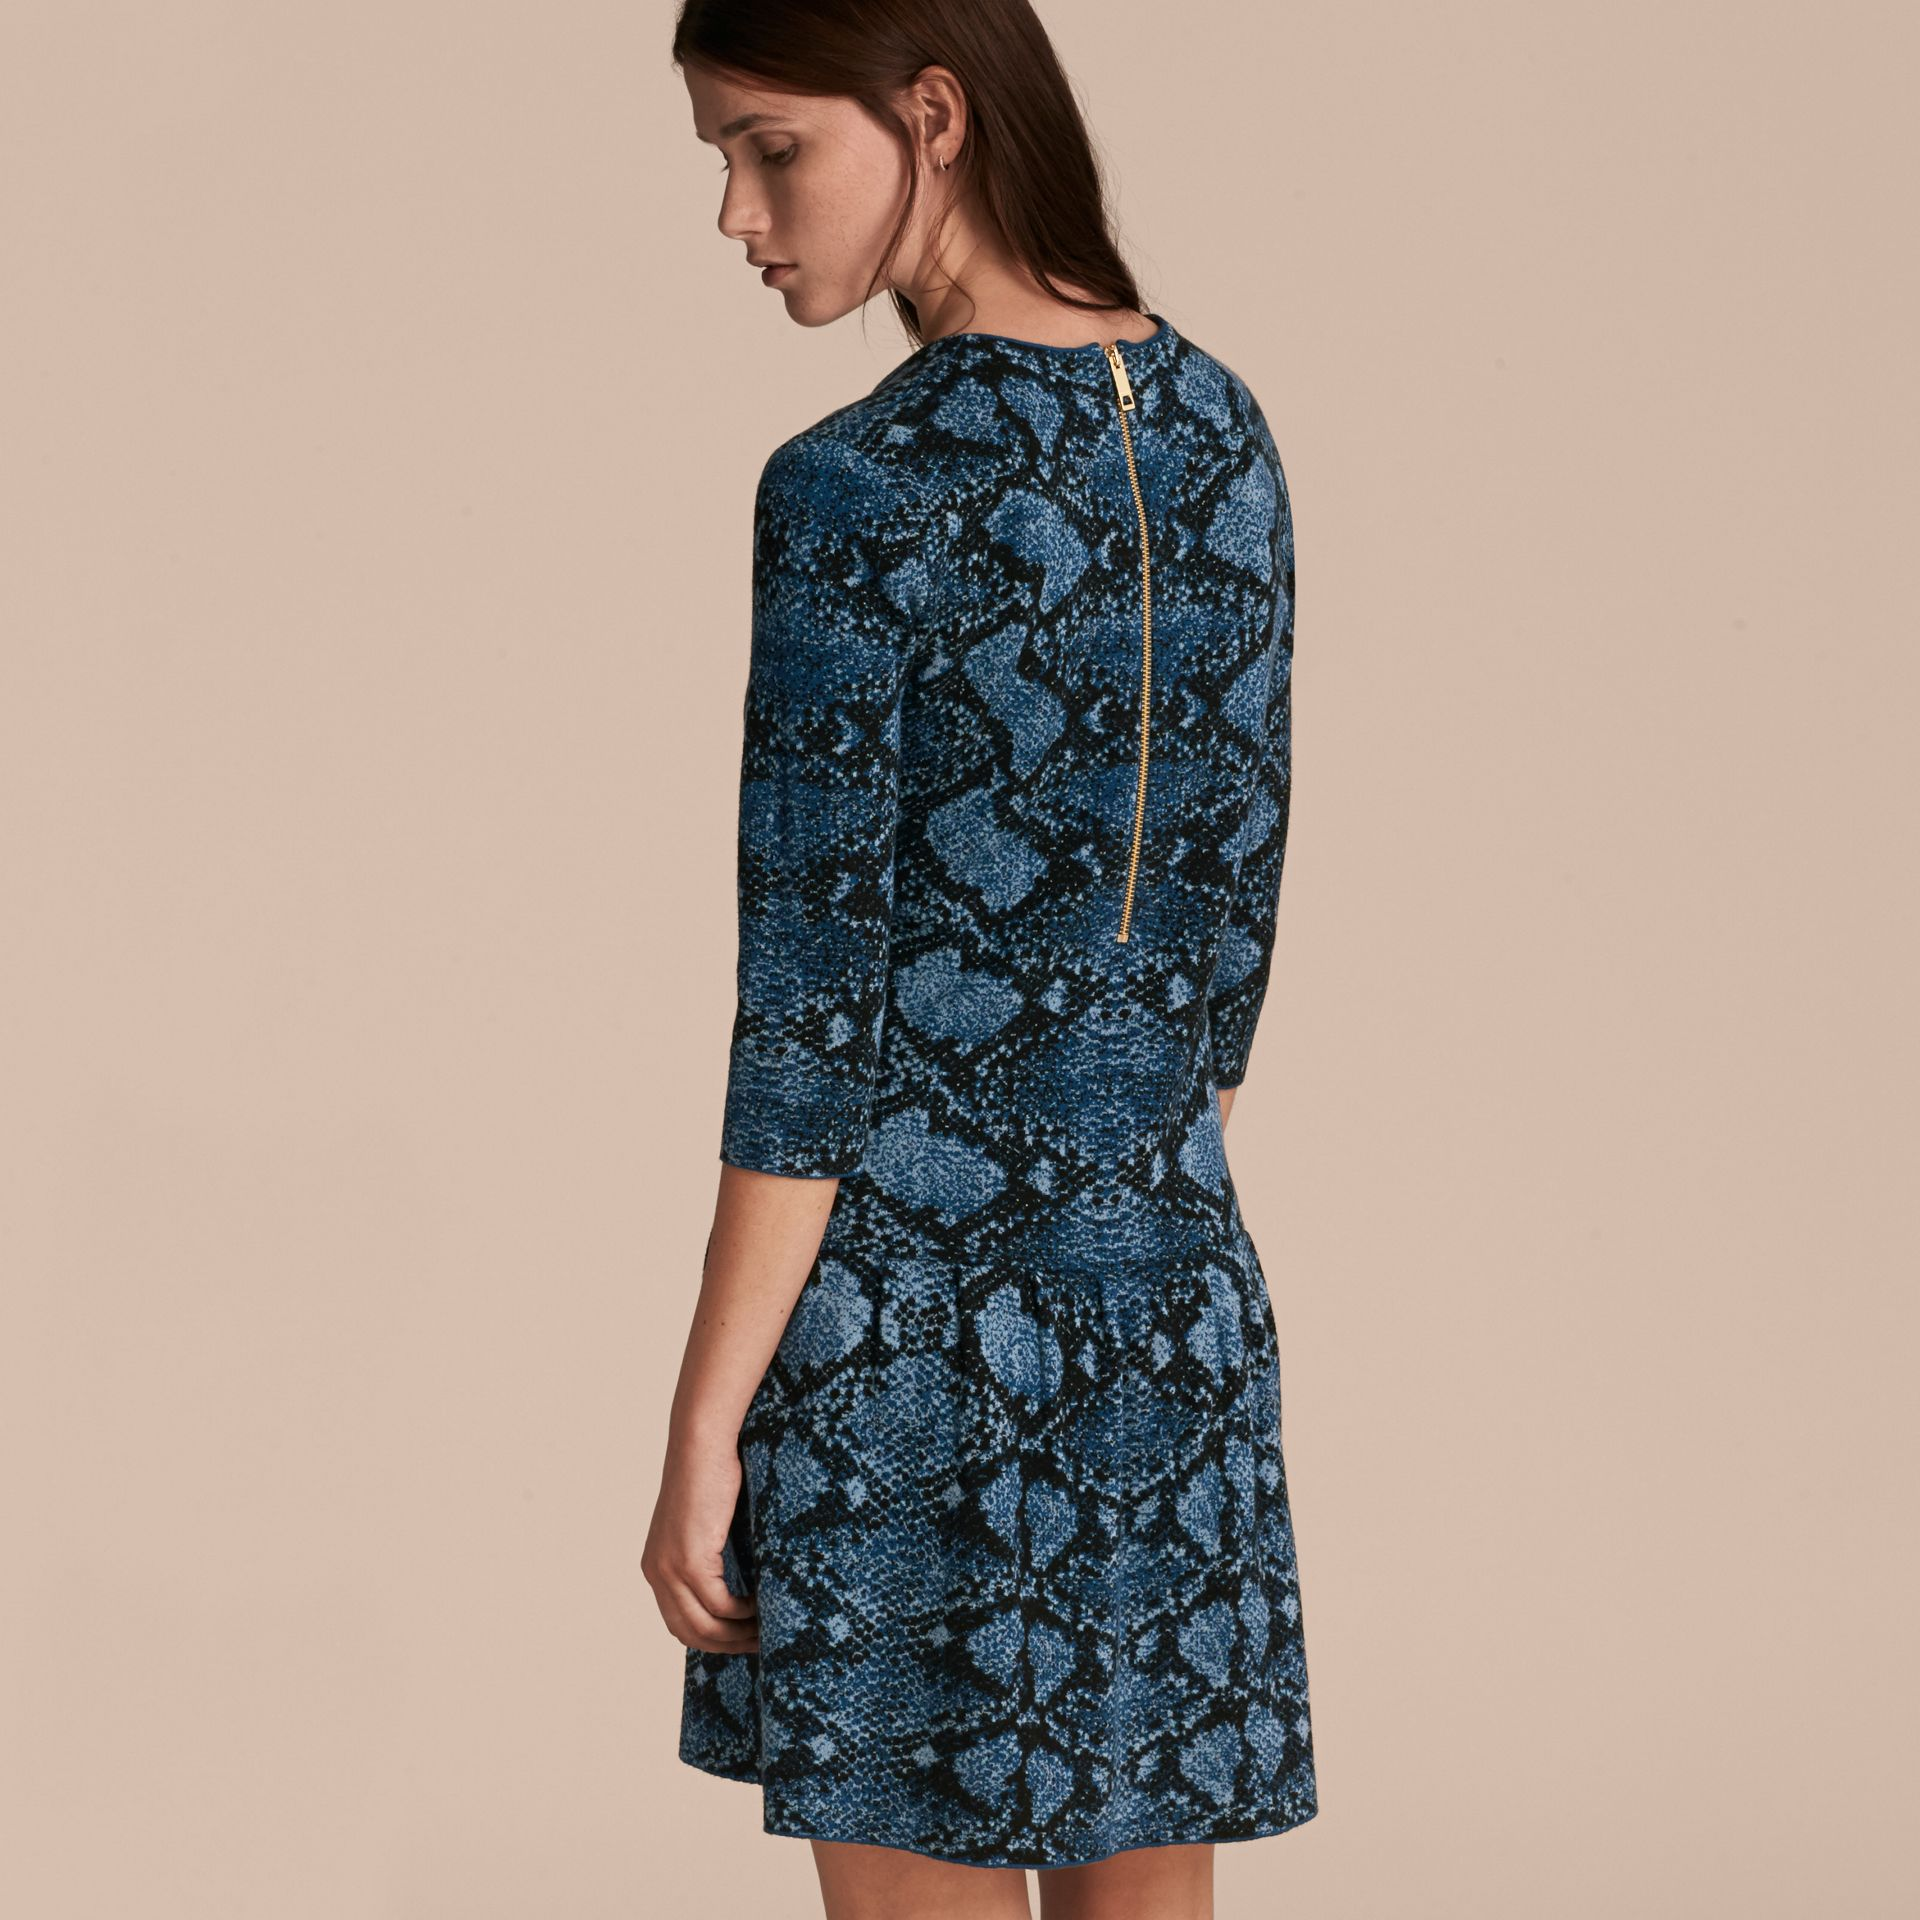 Mineral blue Python Jacquard Merino Wool Dress - gallery image 3